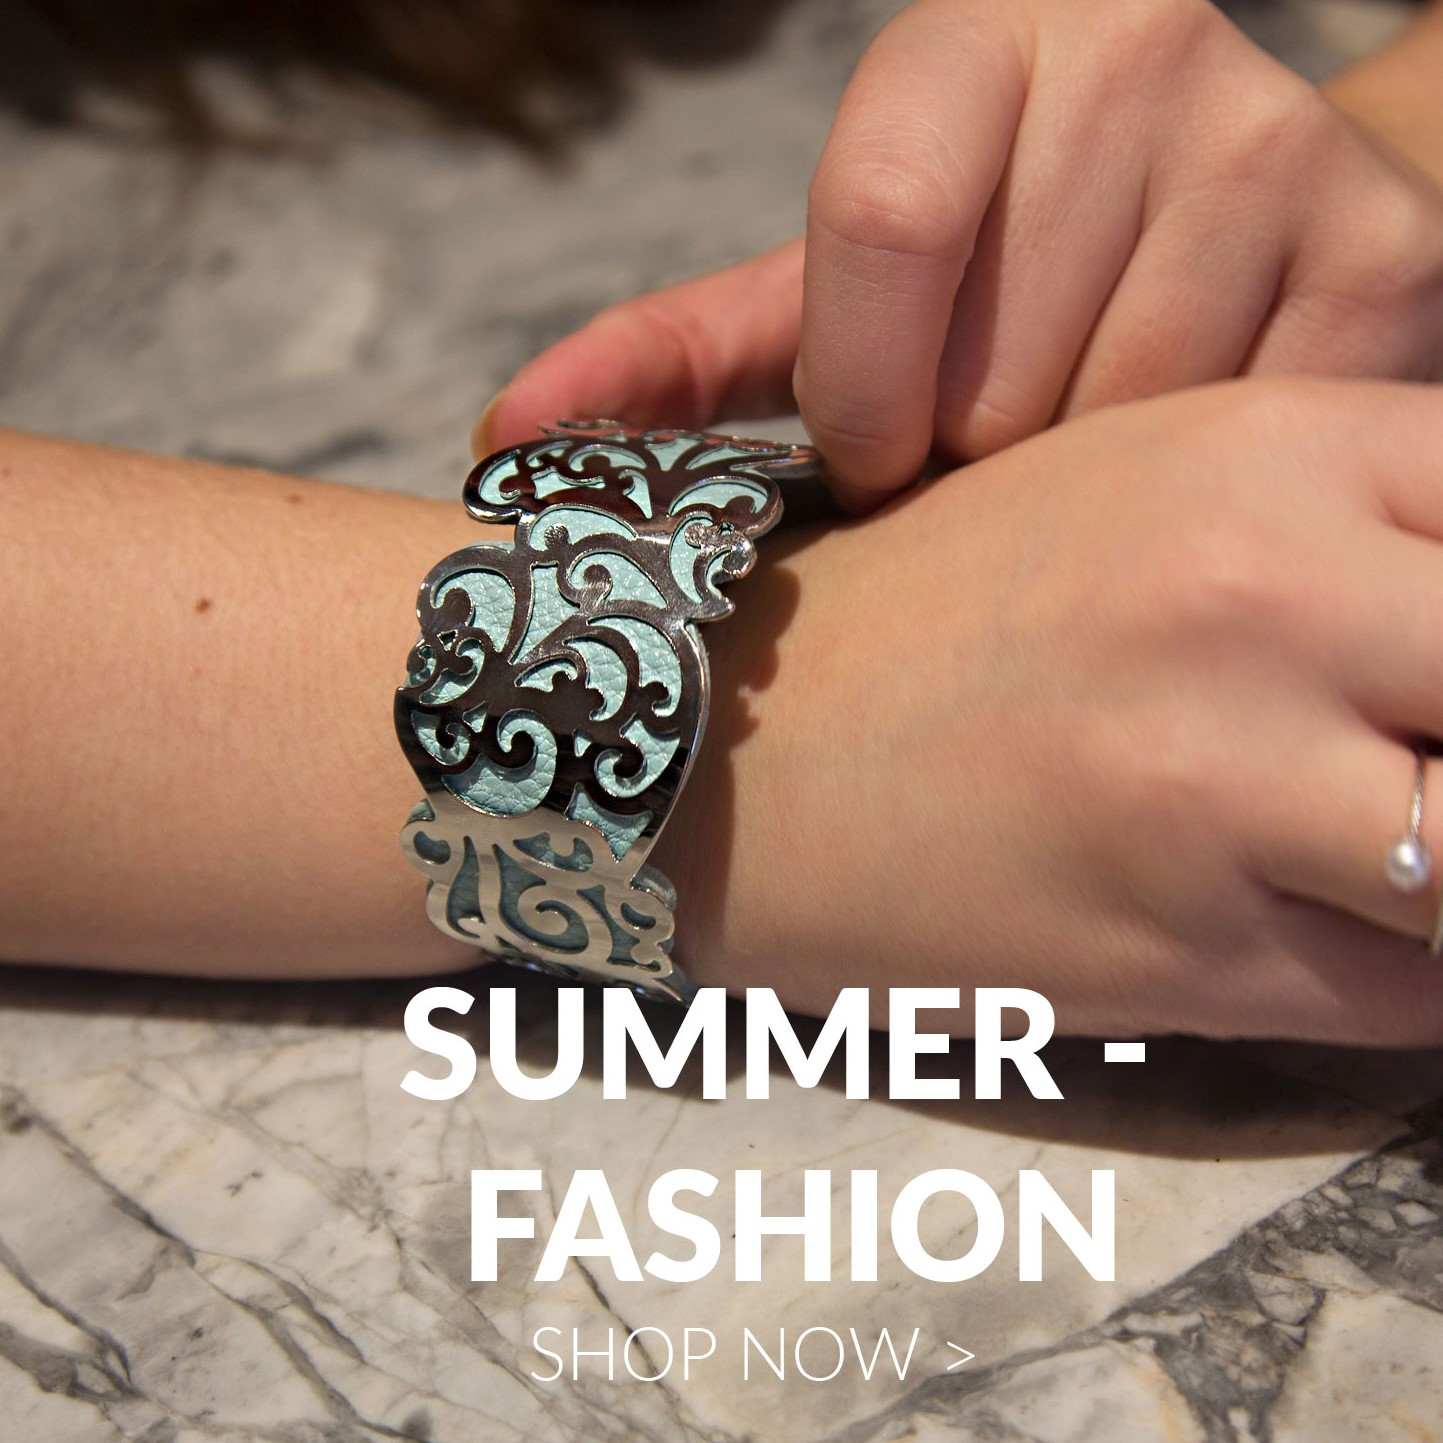 Summer - Fashion